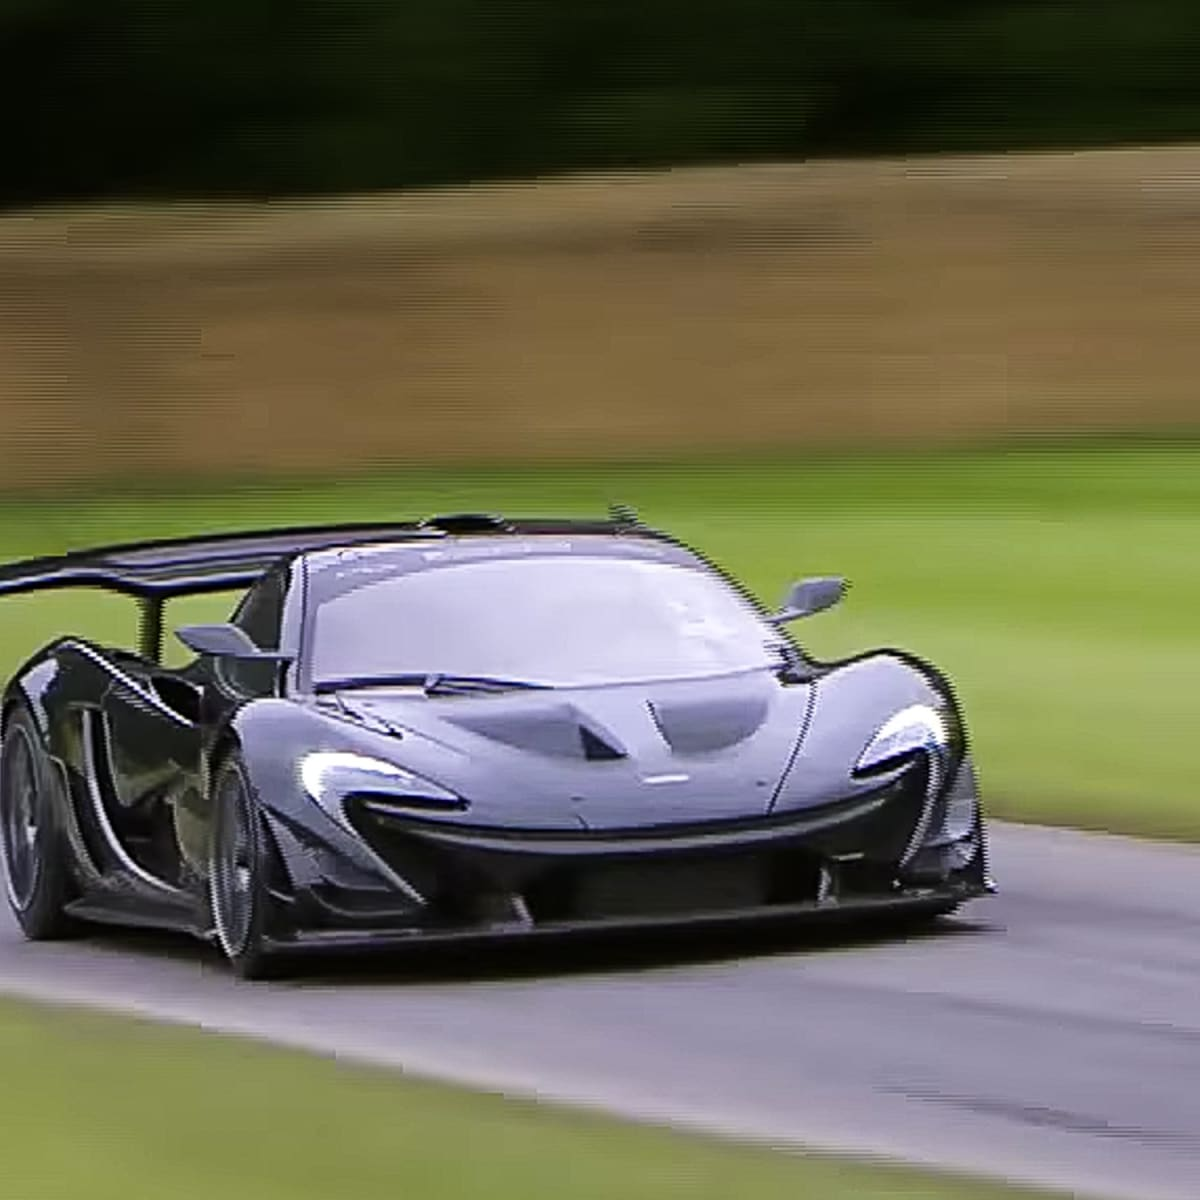 Mclaren P1 Lm Special Sets New Goodwood Festival Of Speed Road Car